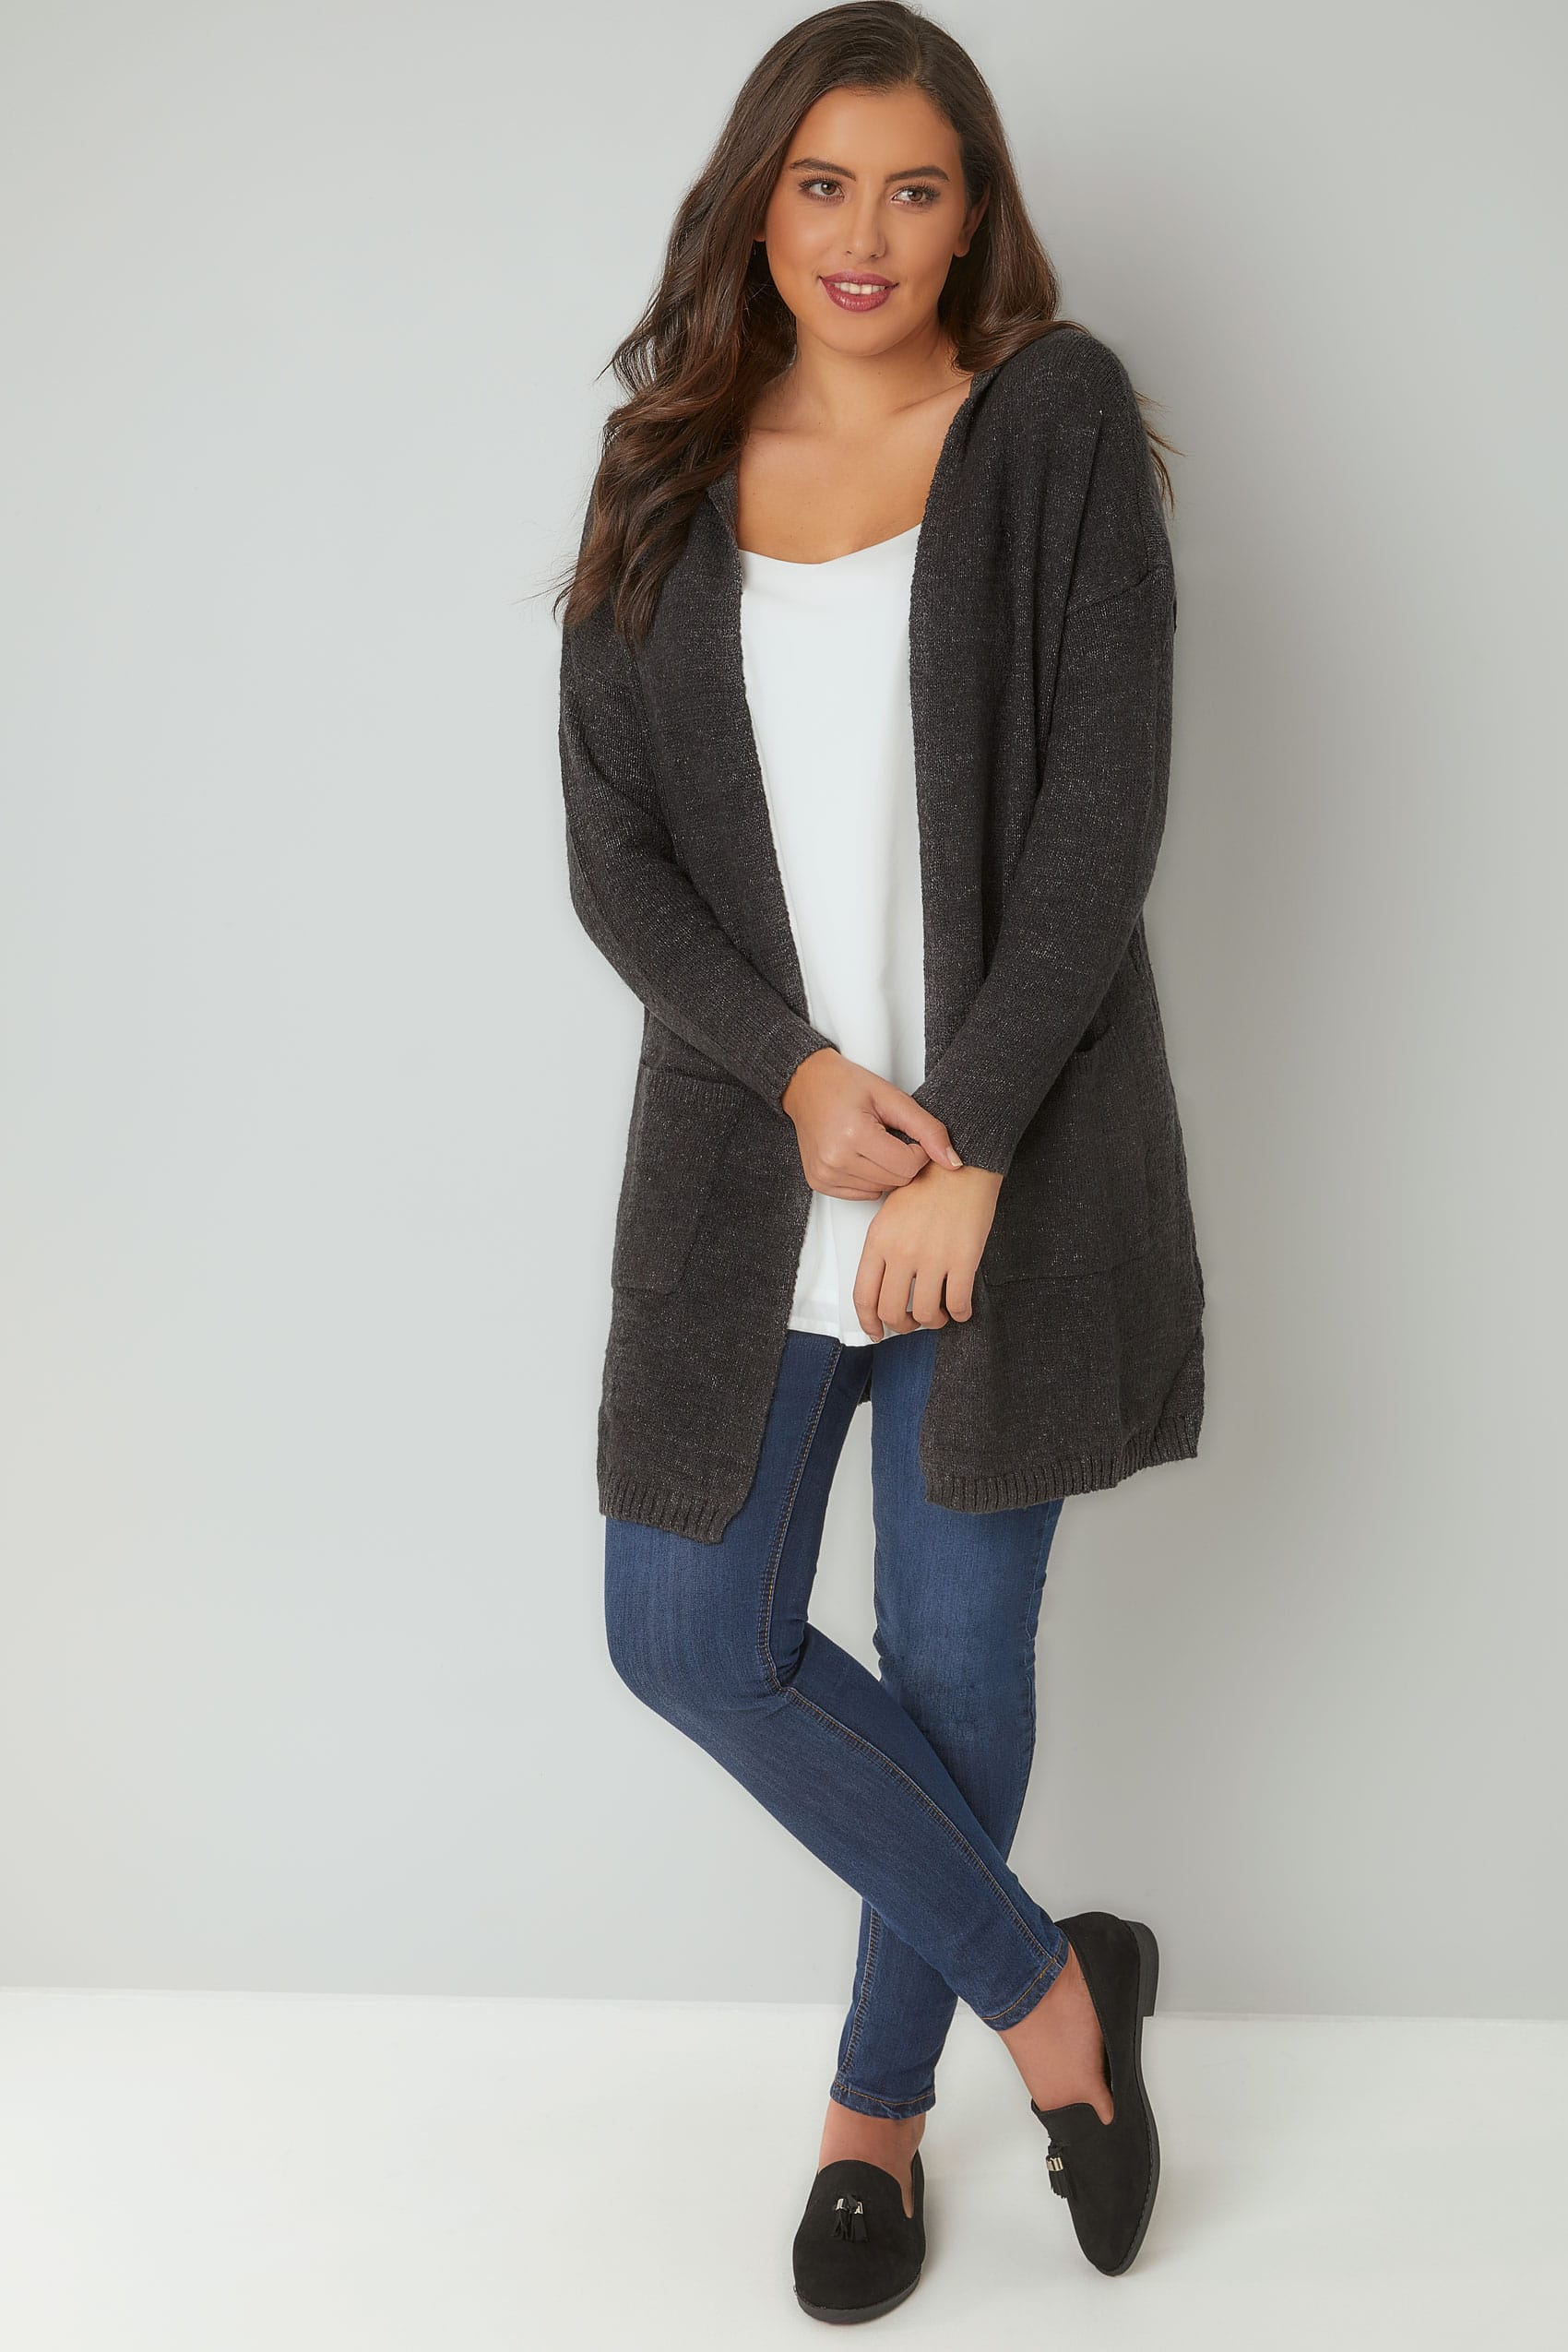 Dark Grey Hooded Cardigan With Pockets, Plus size 16 to 36